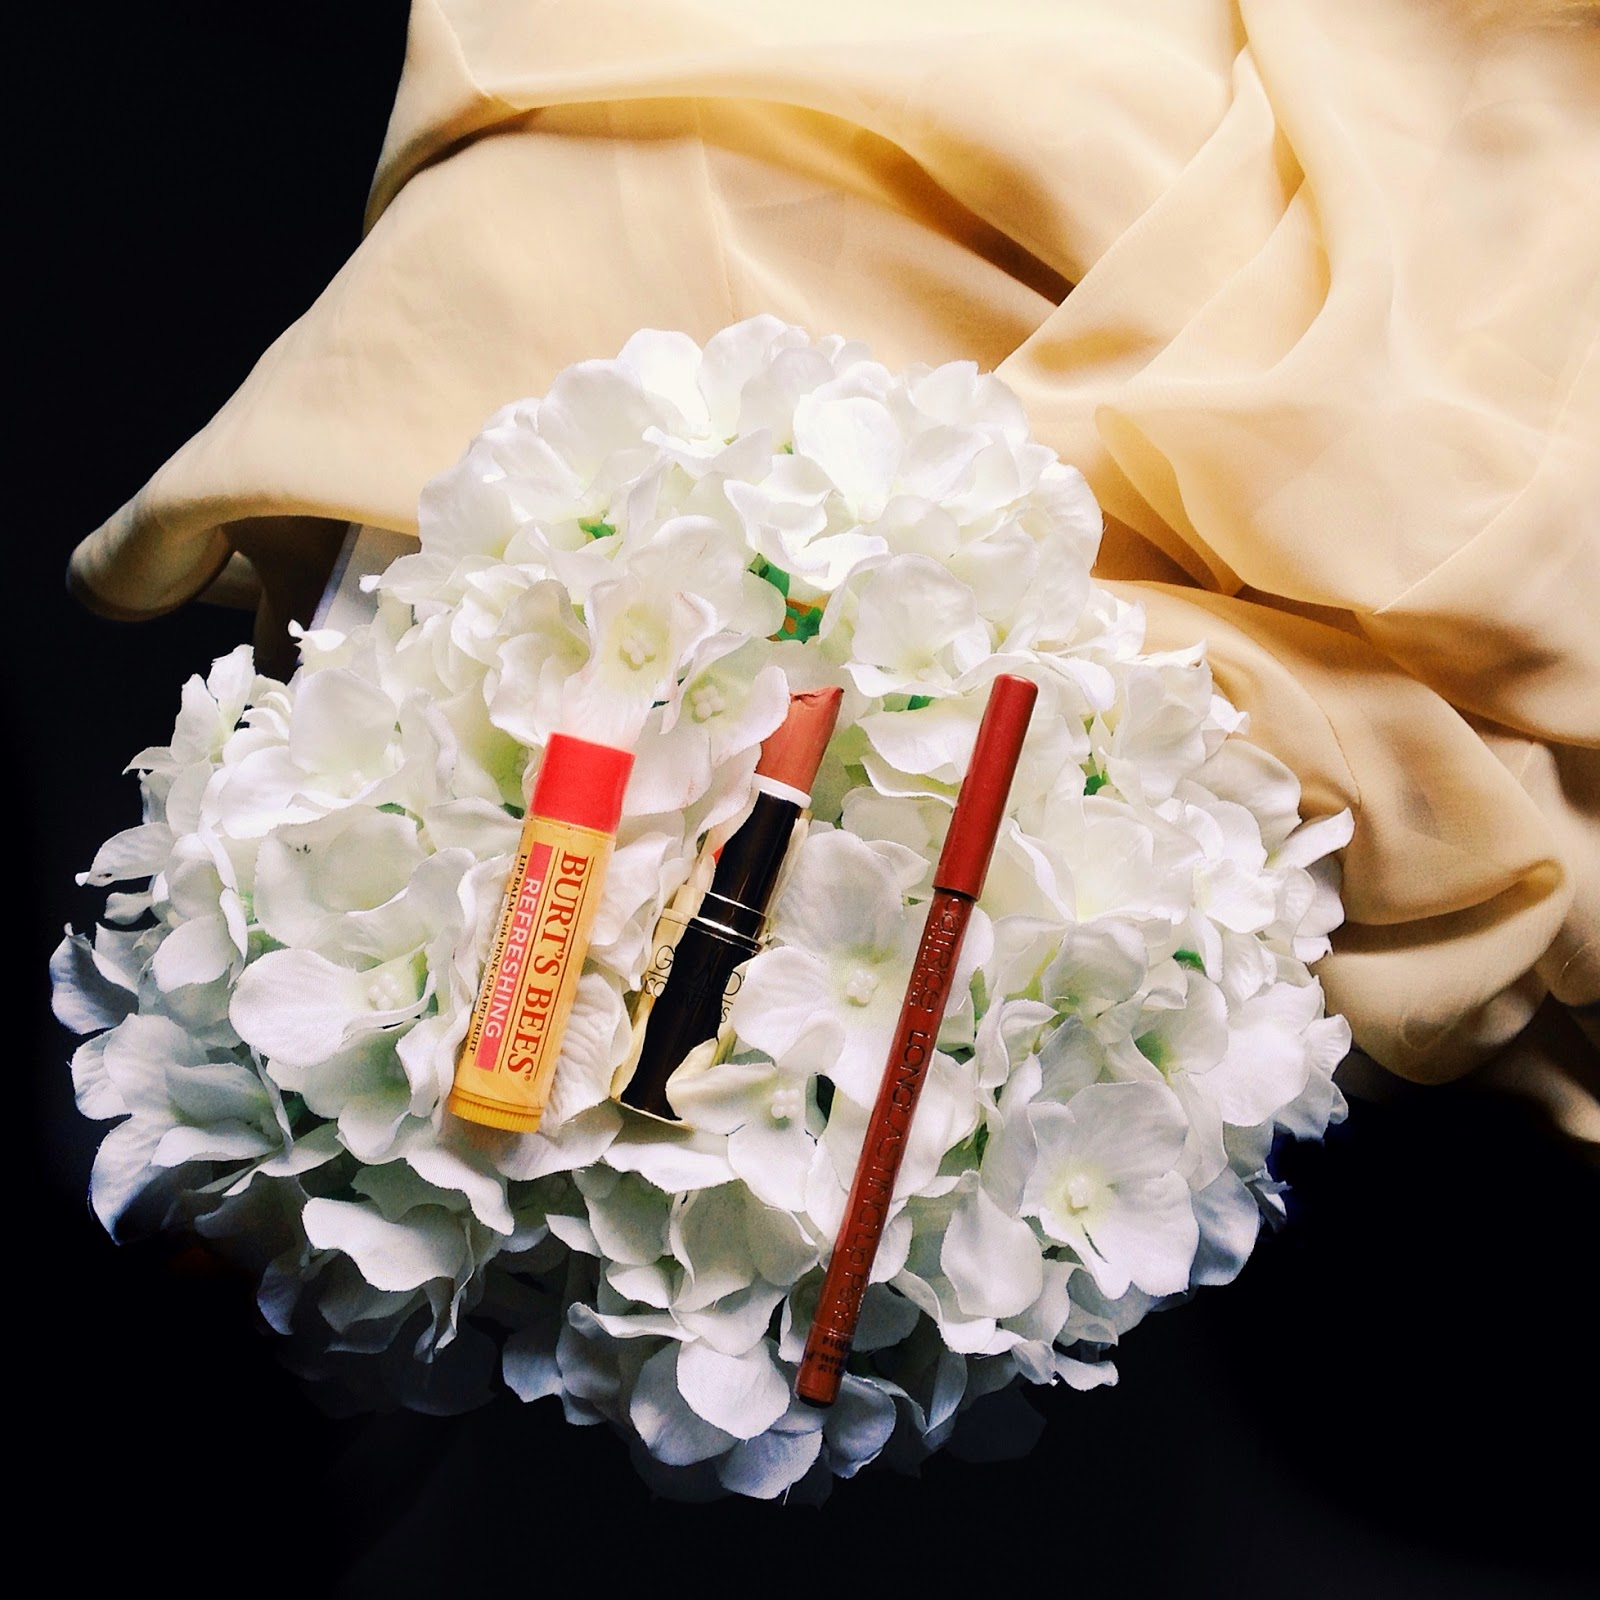 This image shows lip products.